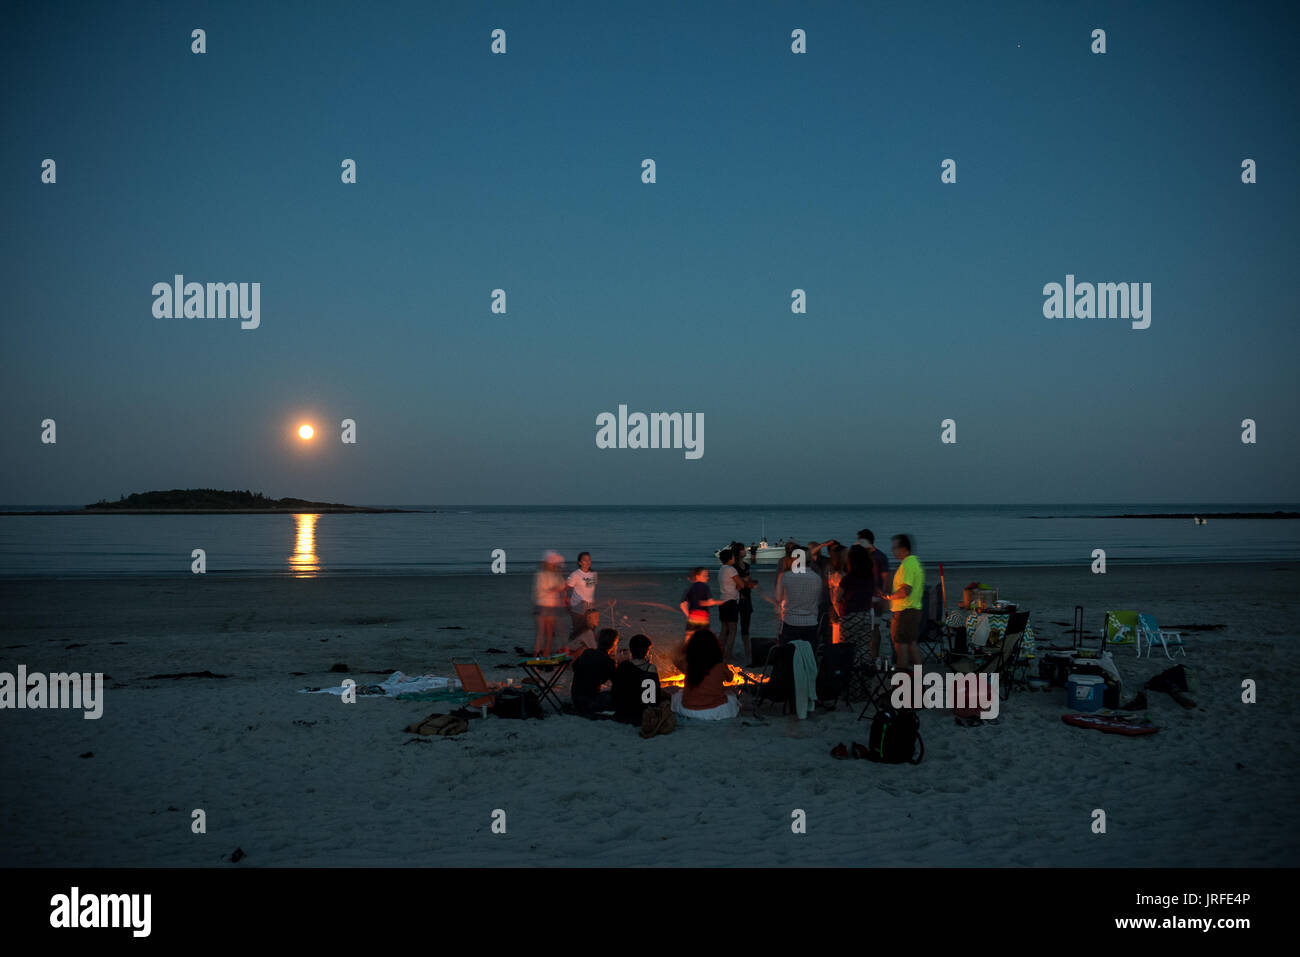 Families gather for a full moon cookout on Goose Rocks Beach, Kennebunkport, Maine, United States - Stock Image